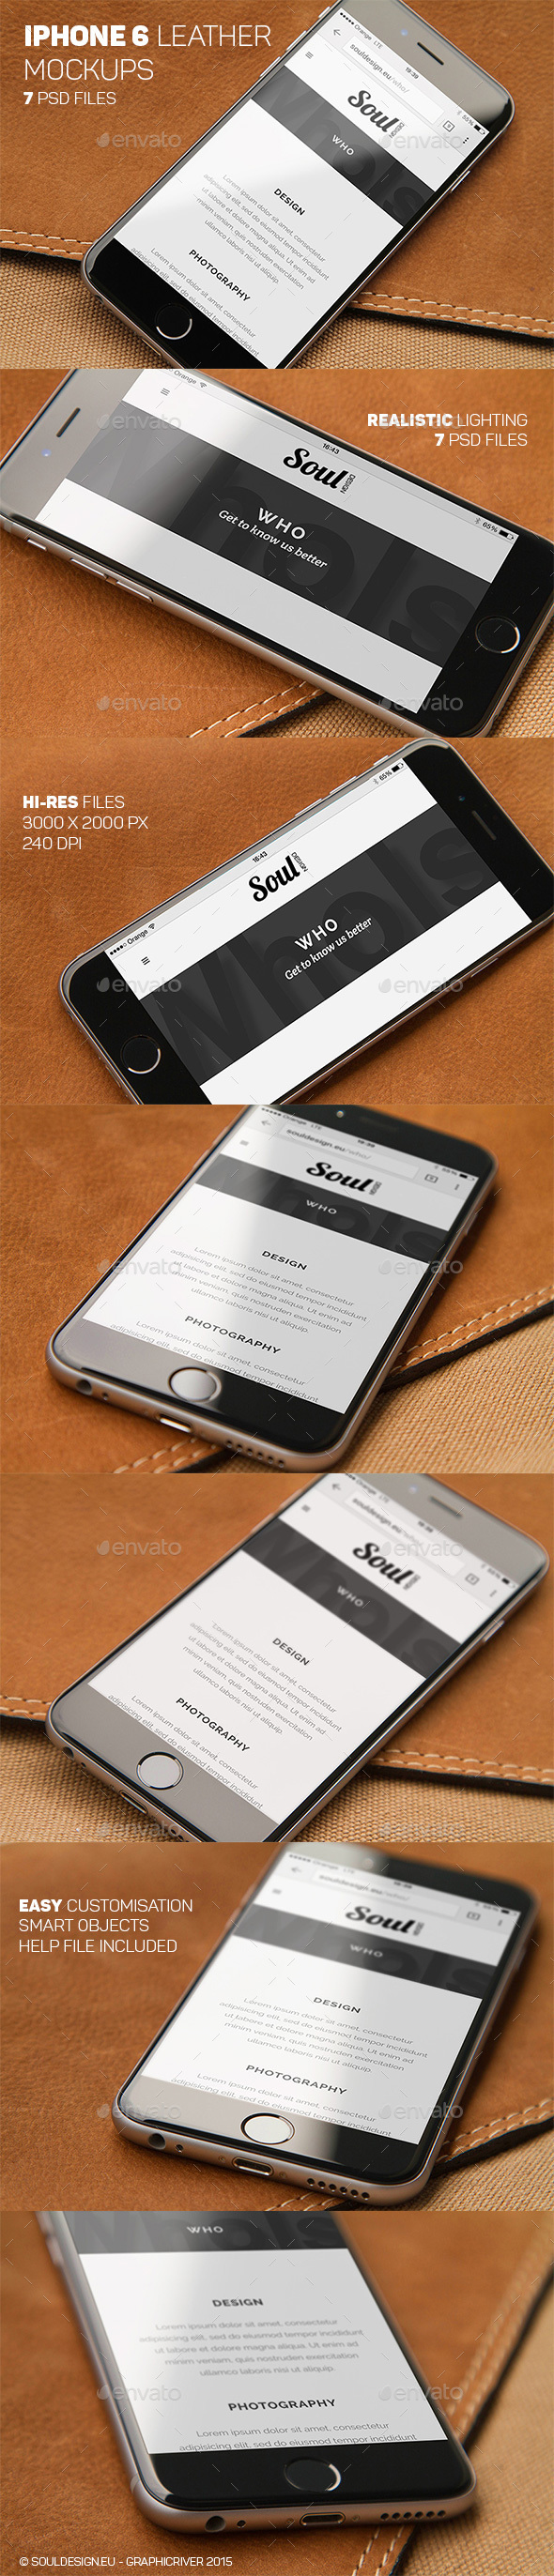 iPhone 6 Closeup Mockups Leather - Mobile Displays